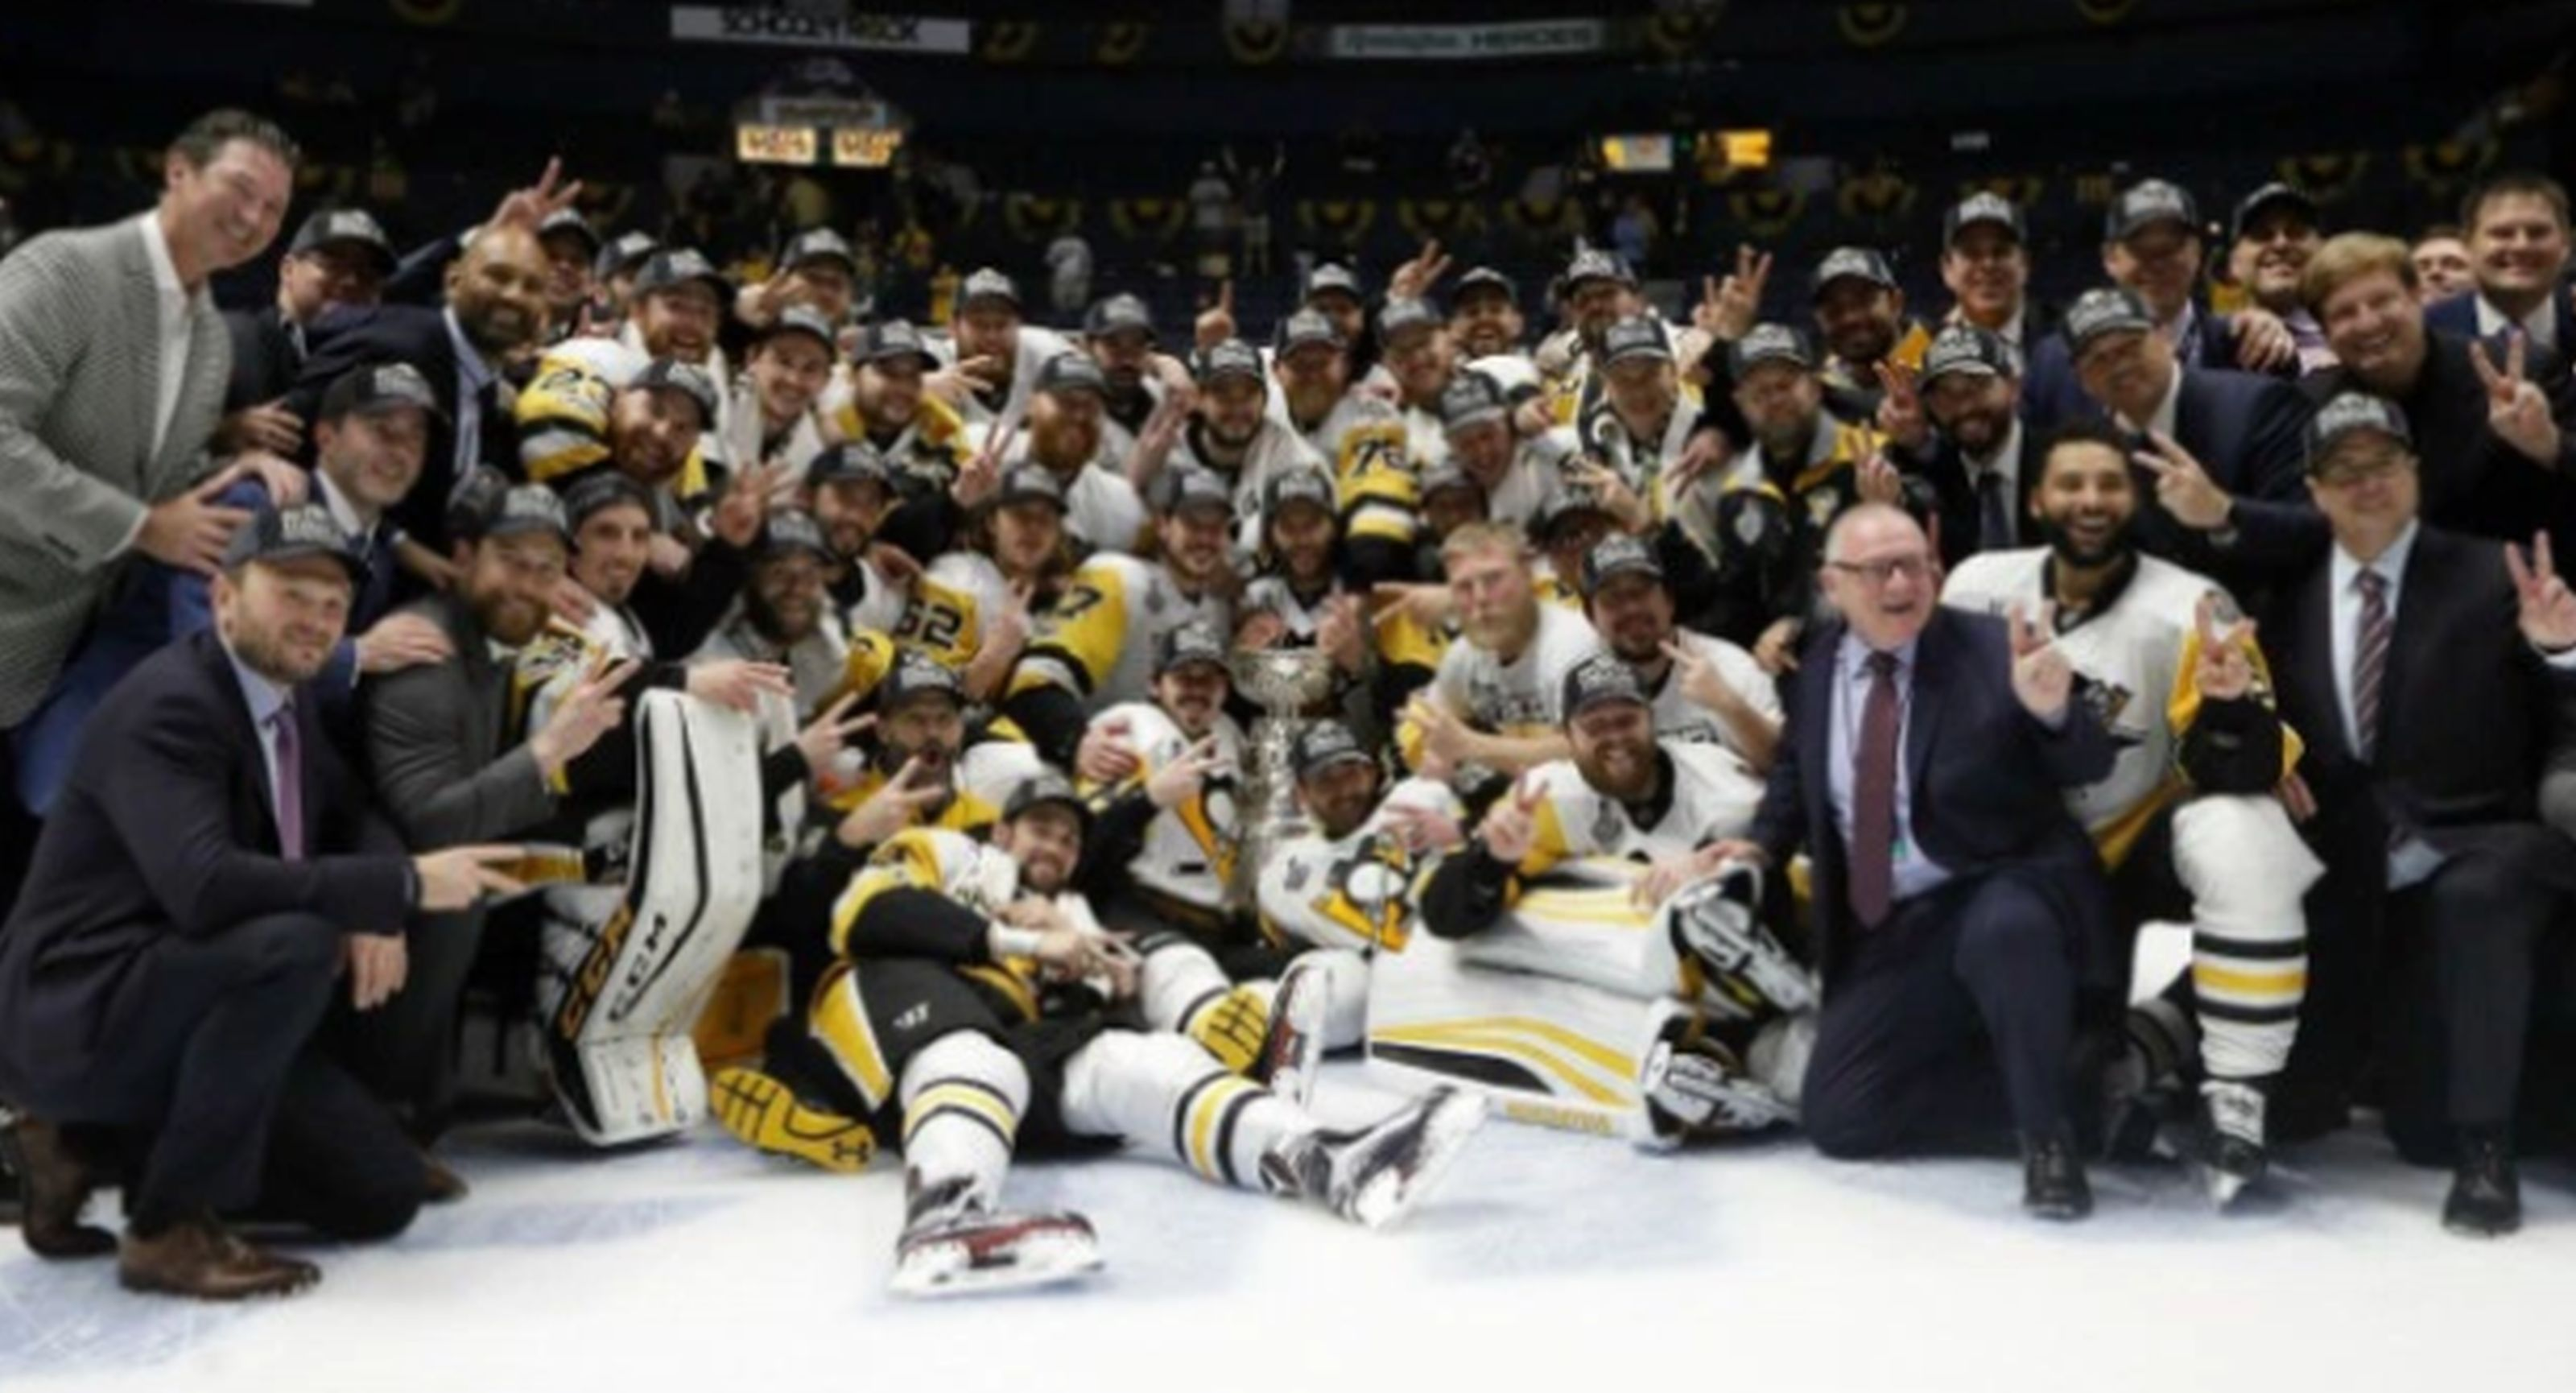 Pittsburgh Penguins players and coaches celebrate after defeating the Nashville Predators 2-0 in Game 6 of the NHL hockey Stanley Cup Final, Sunday, June 11, 2017, in Nashville, Tenn. AP WIREPHOTO/Mark Humphrey